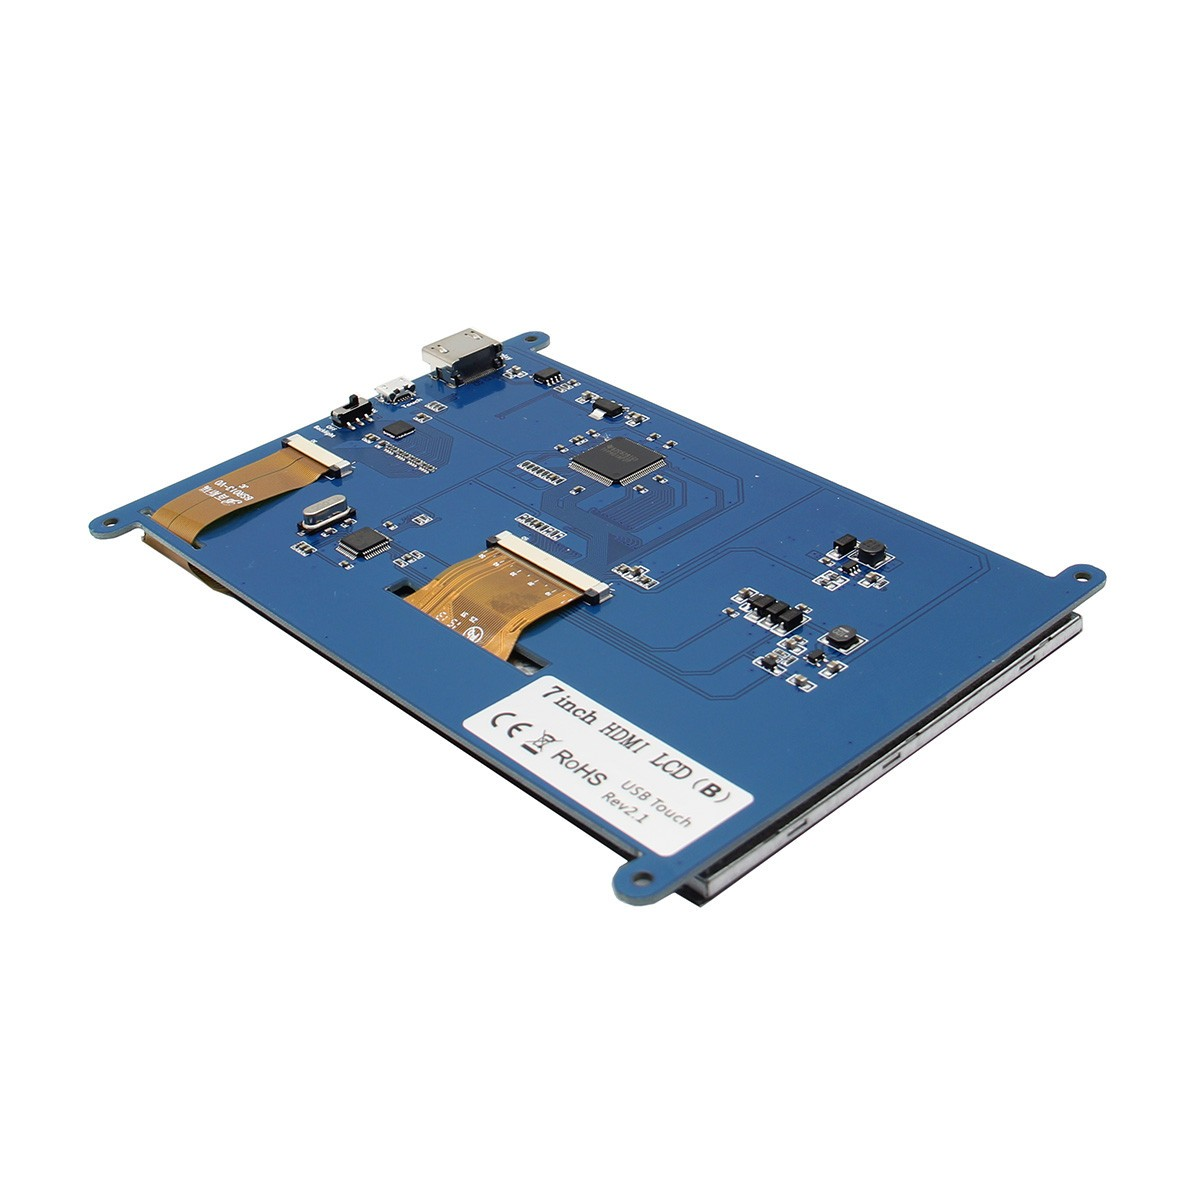 7 Inch 800 x 480 HDMI Capacitive IPS LCD Module